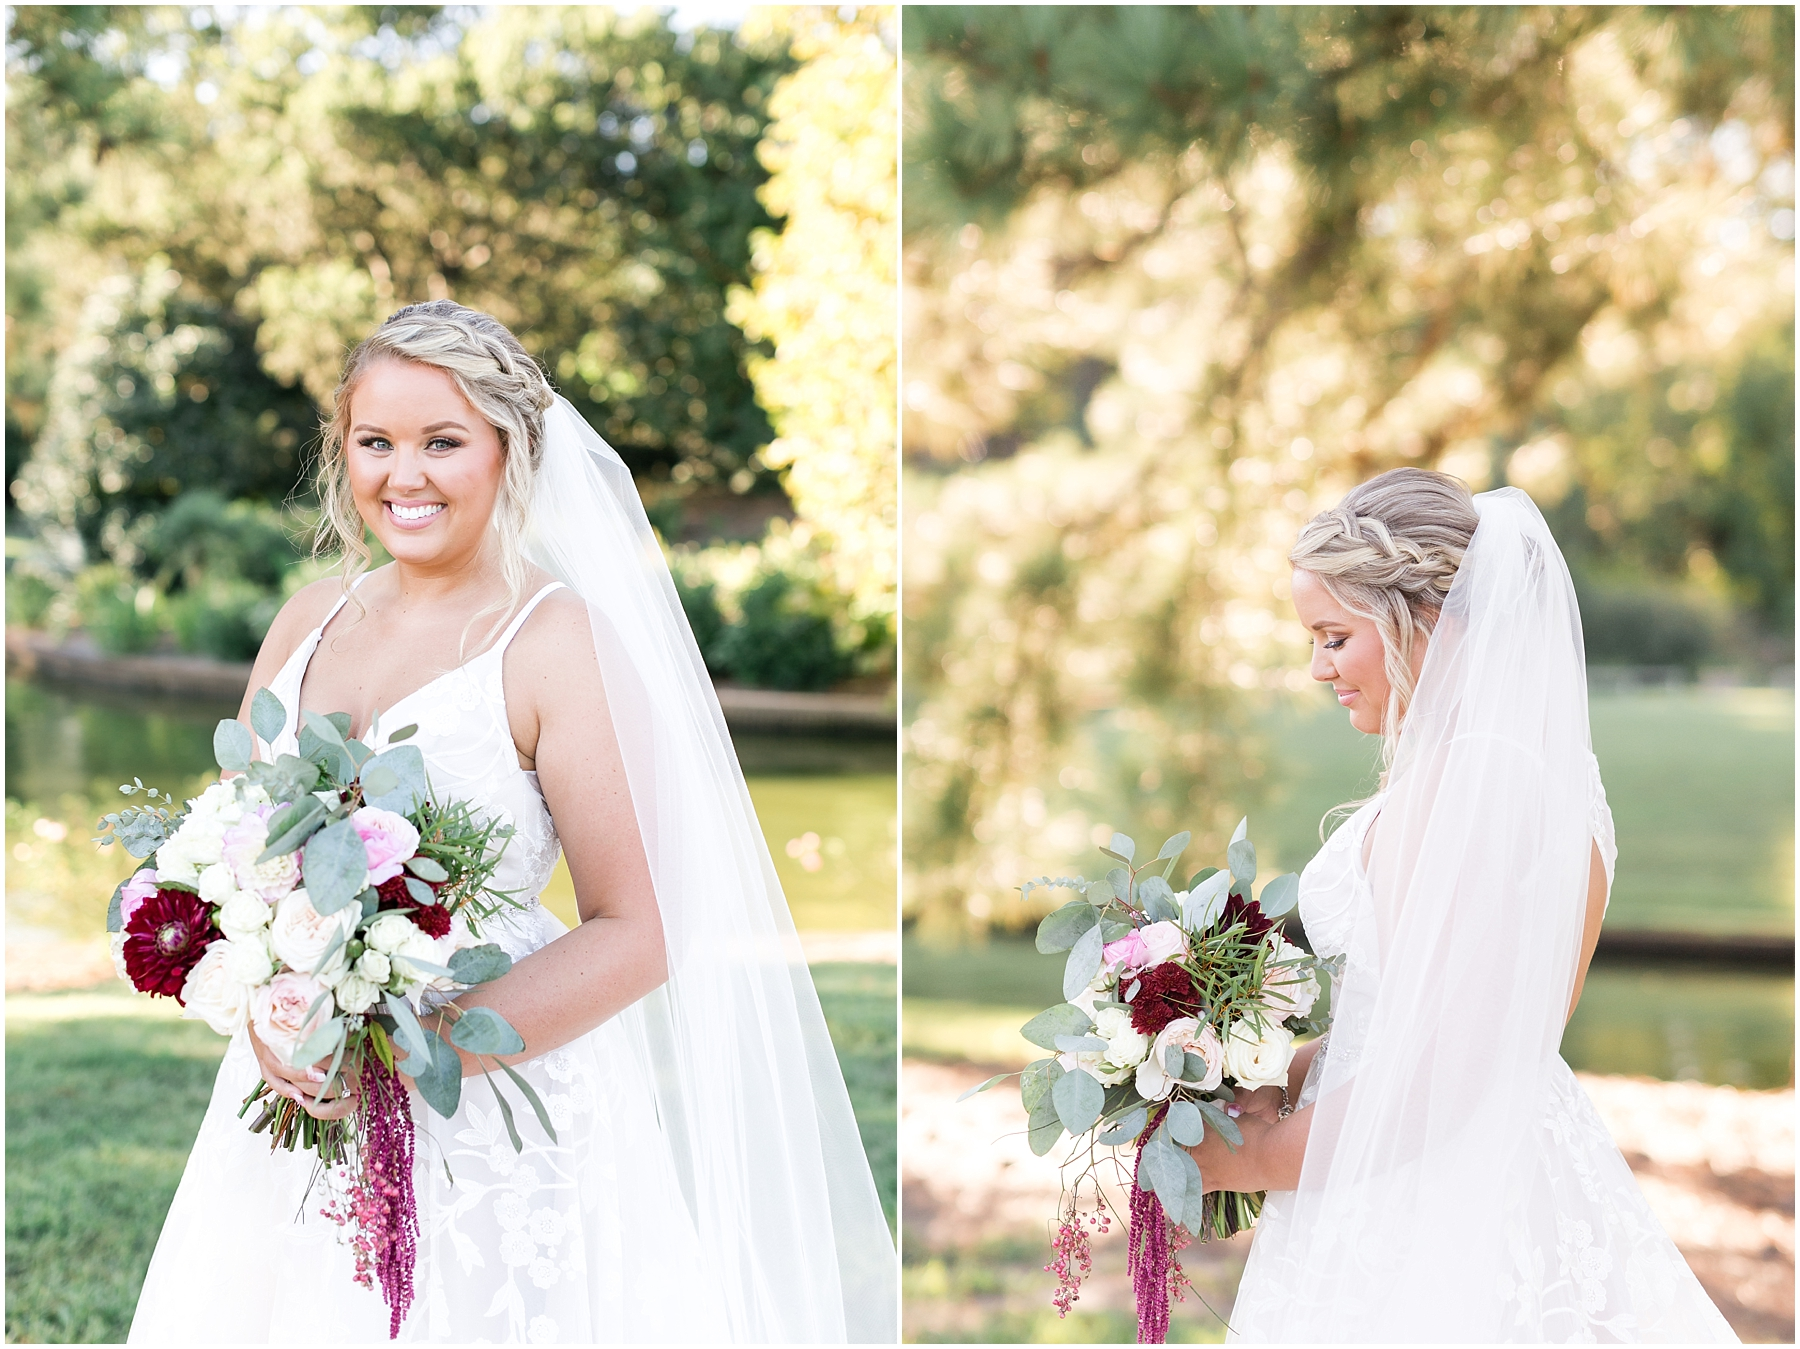 bridal party portraits at norfolk botanical gardens wedding day, jessica ryan photography, fluttering flowers, blush by hayley paige, flawless onsite, blushtones